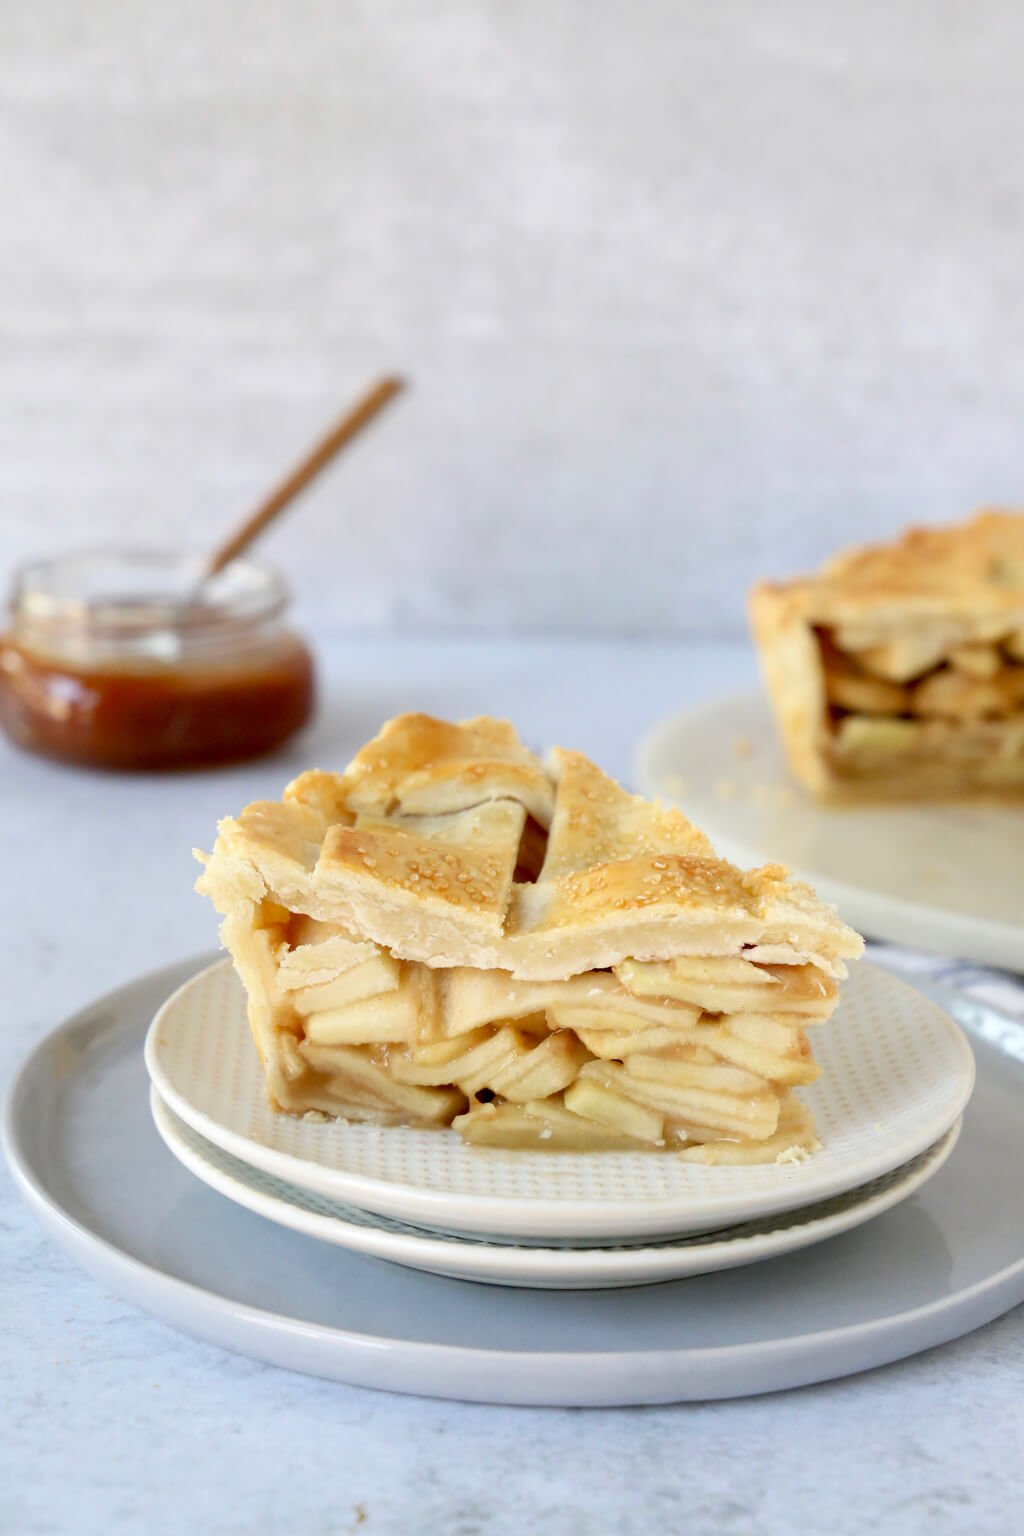 Slice of deep dish apple pie with caramel sauce in the background